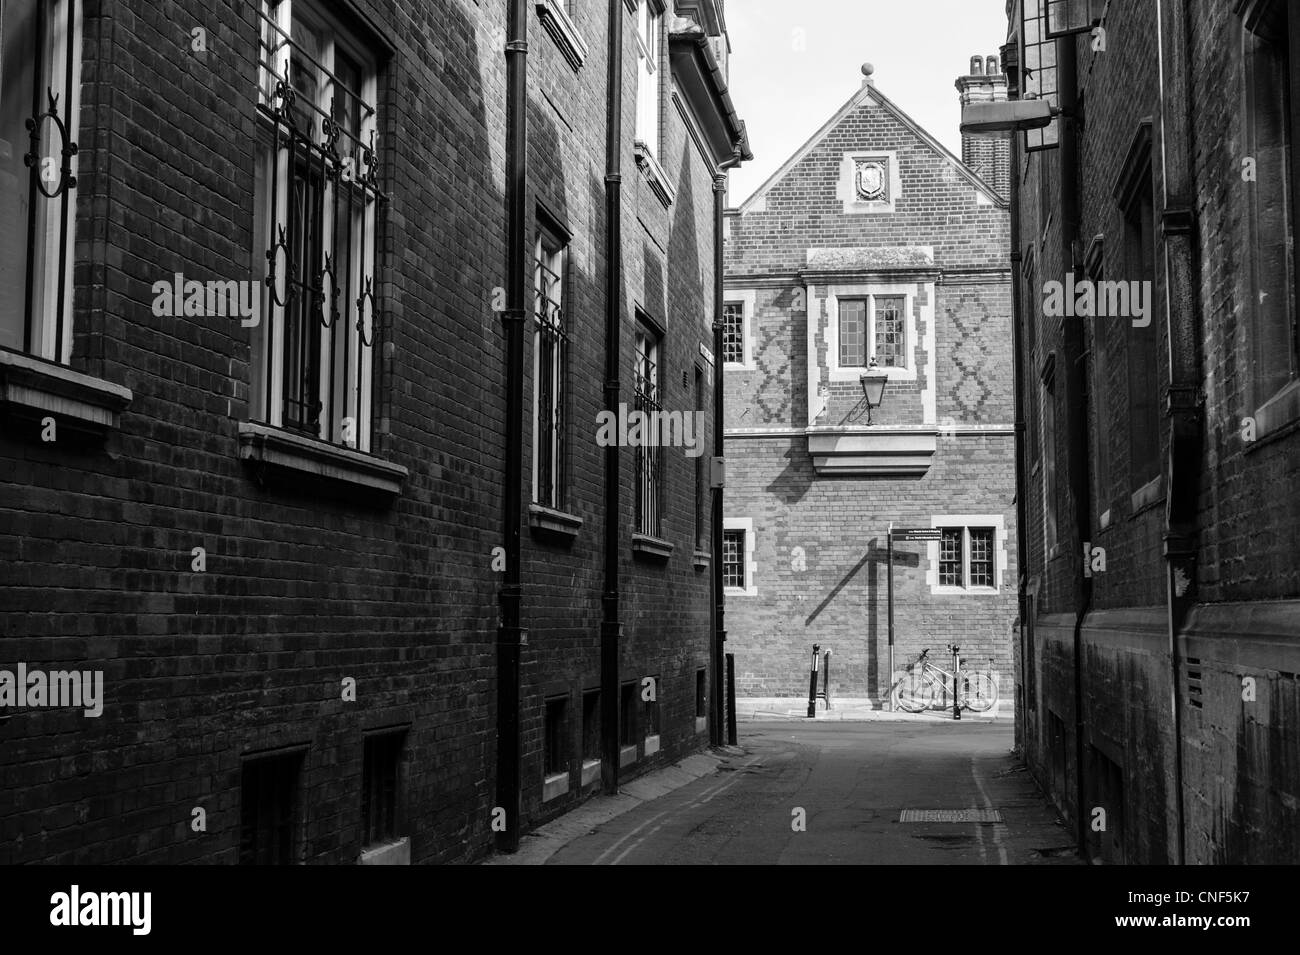 Garret Hostel Lane Cambridge showing old University buildings of Trinity Hall College. - Stock Image